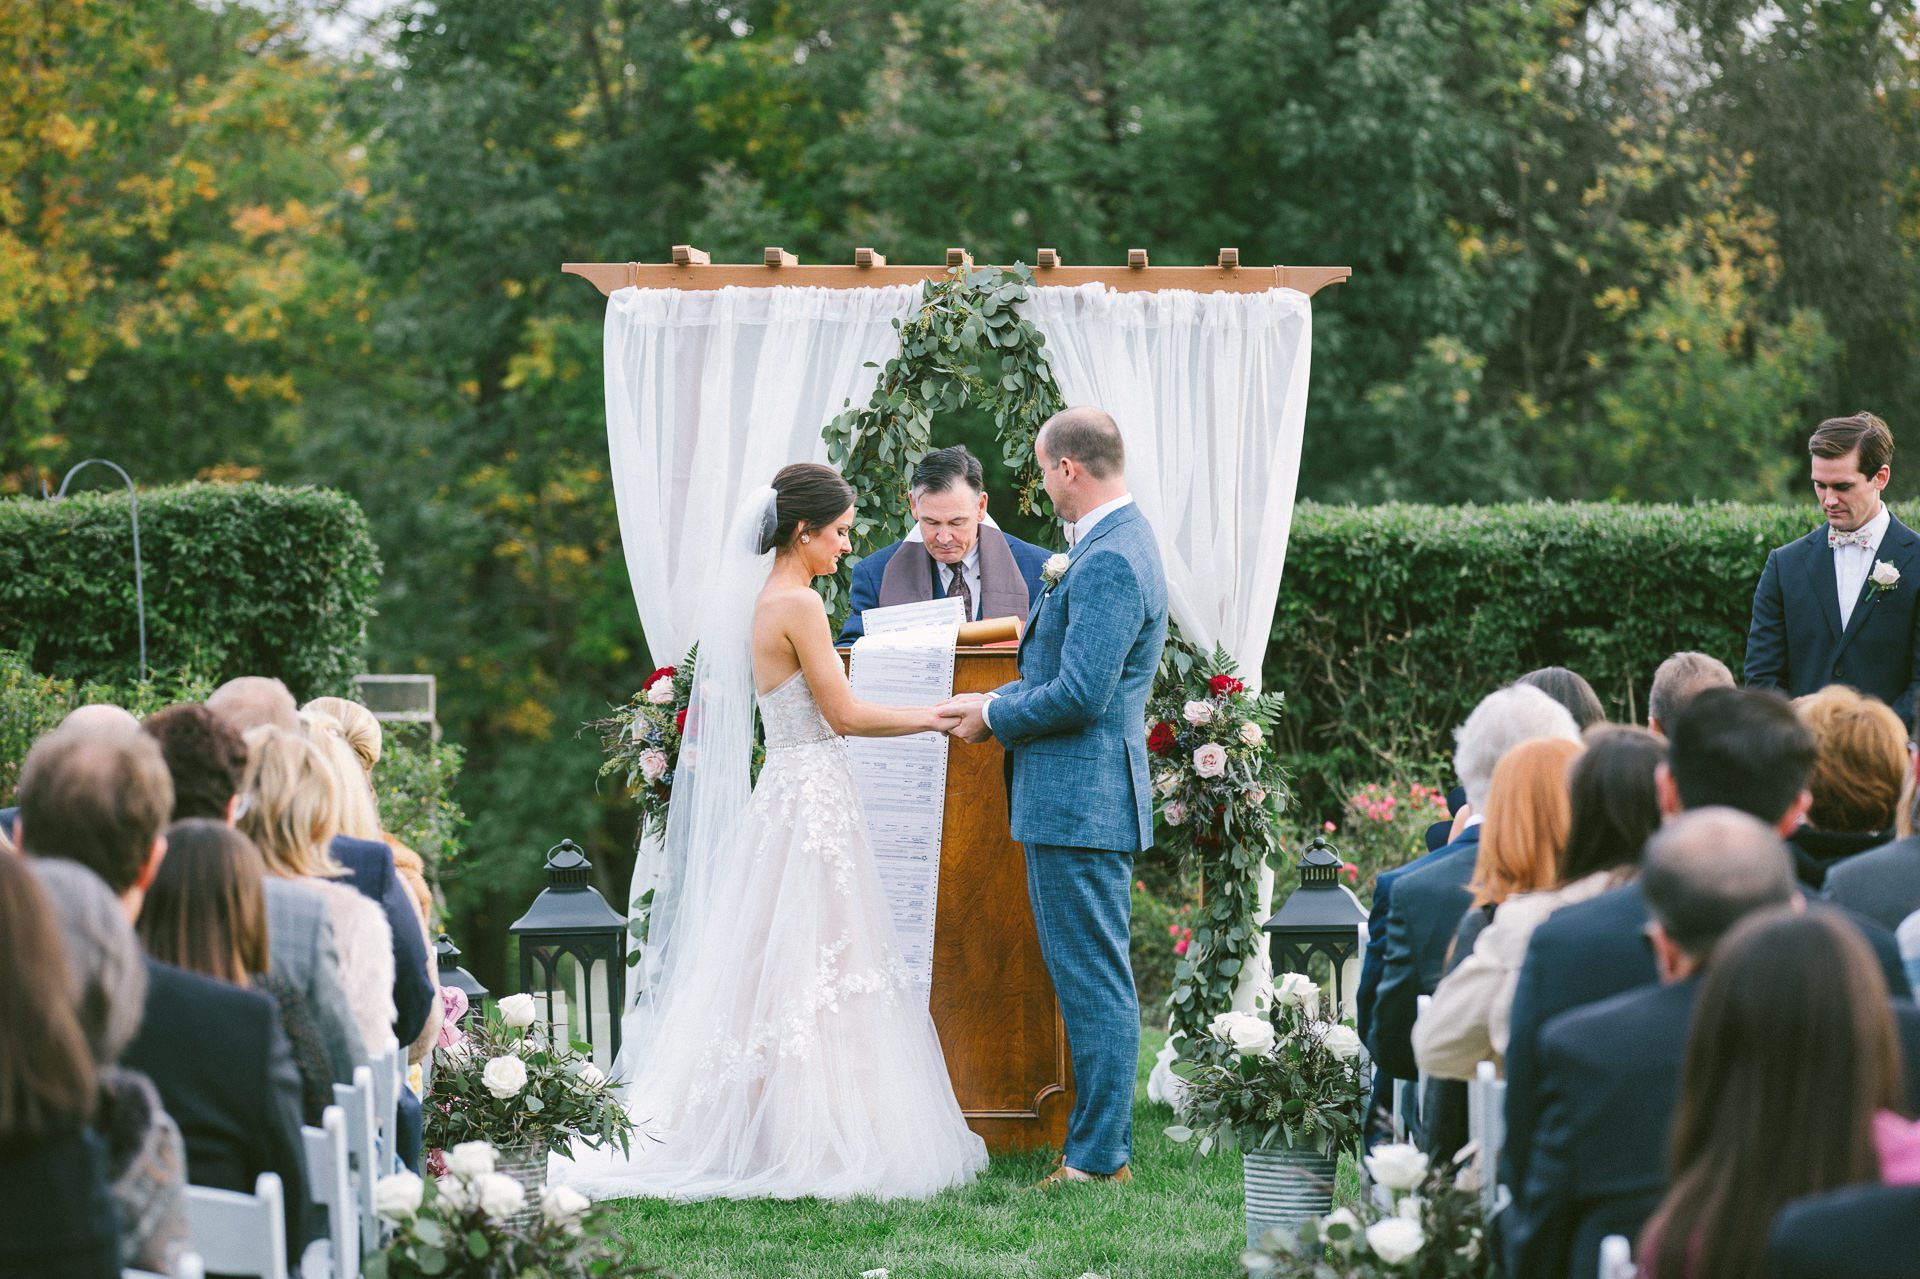 Wedding at Kirtland Country Club in Willoughby 3 9.jpg